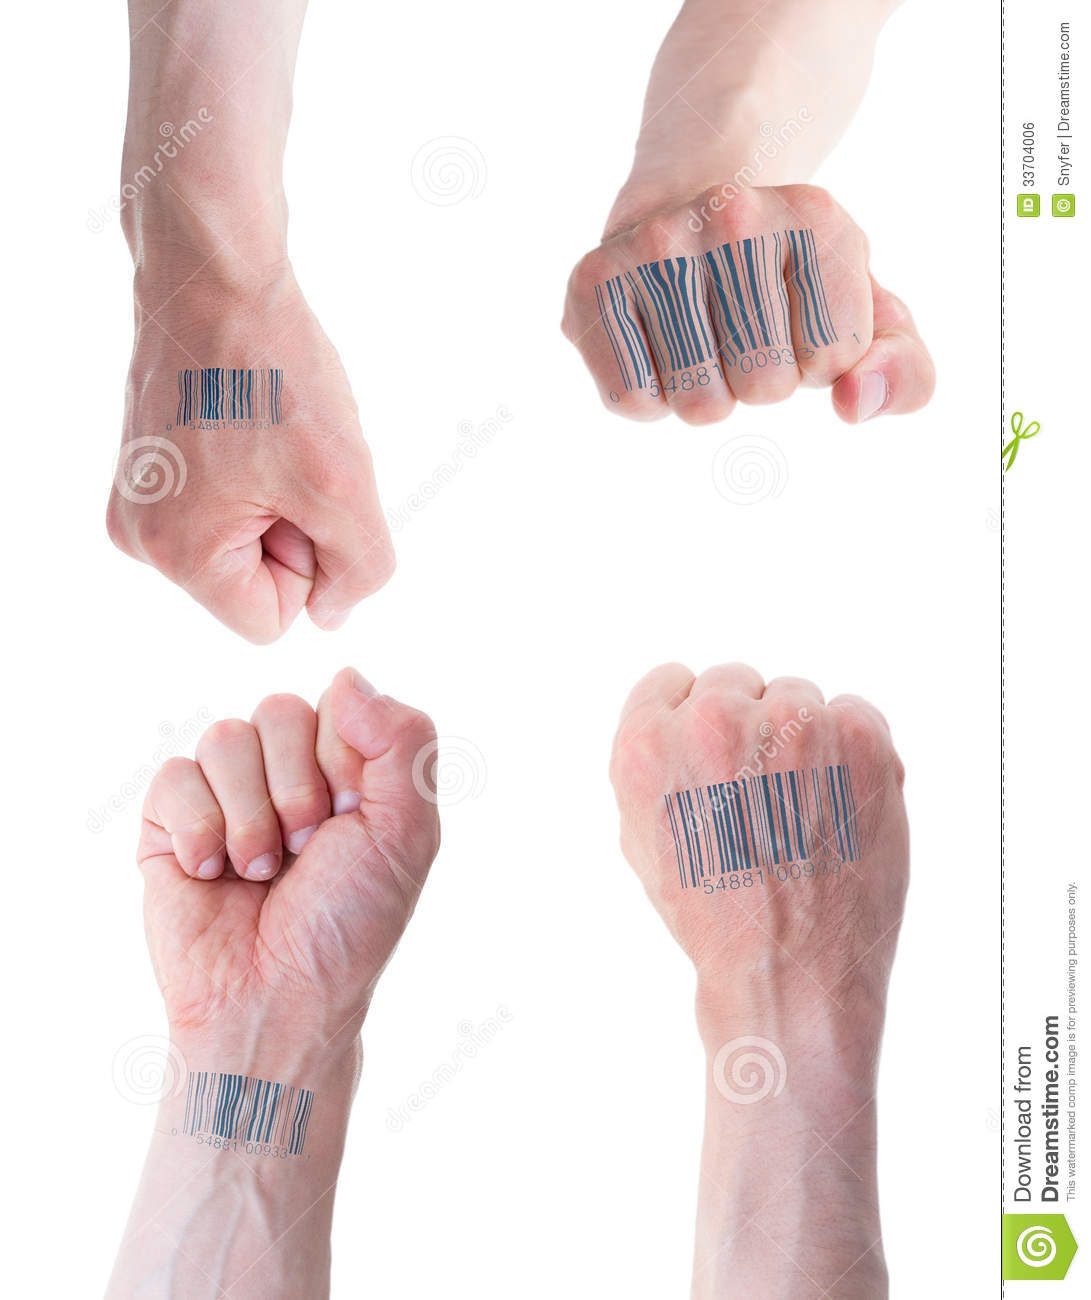 Biometric Id Concept Royalty Free Stock Image Image Ideas And Designs